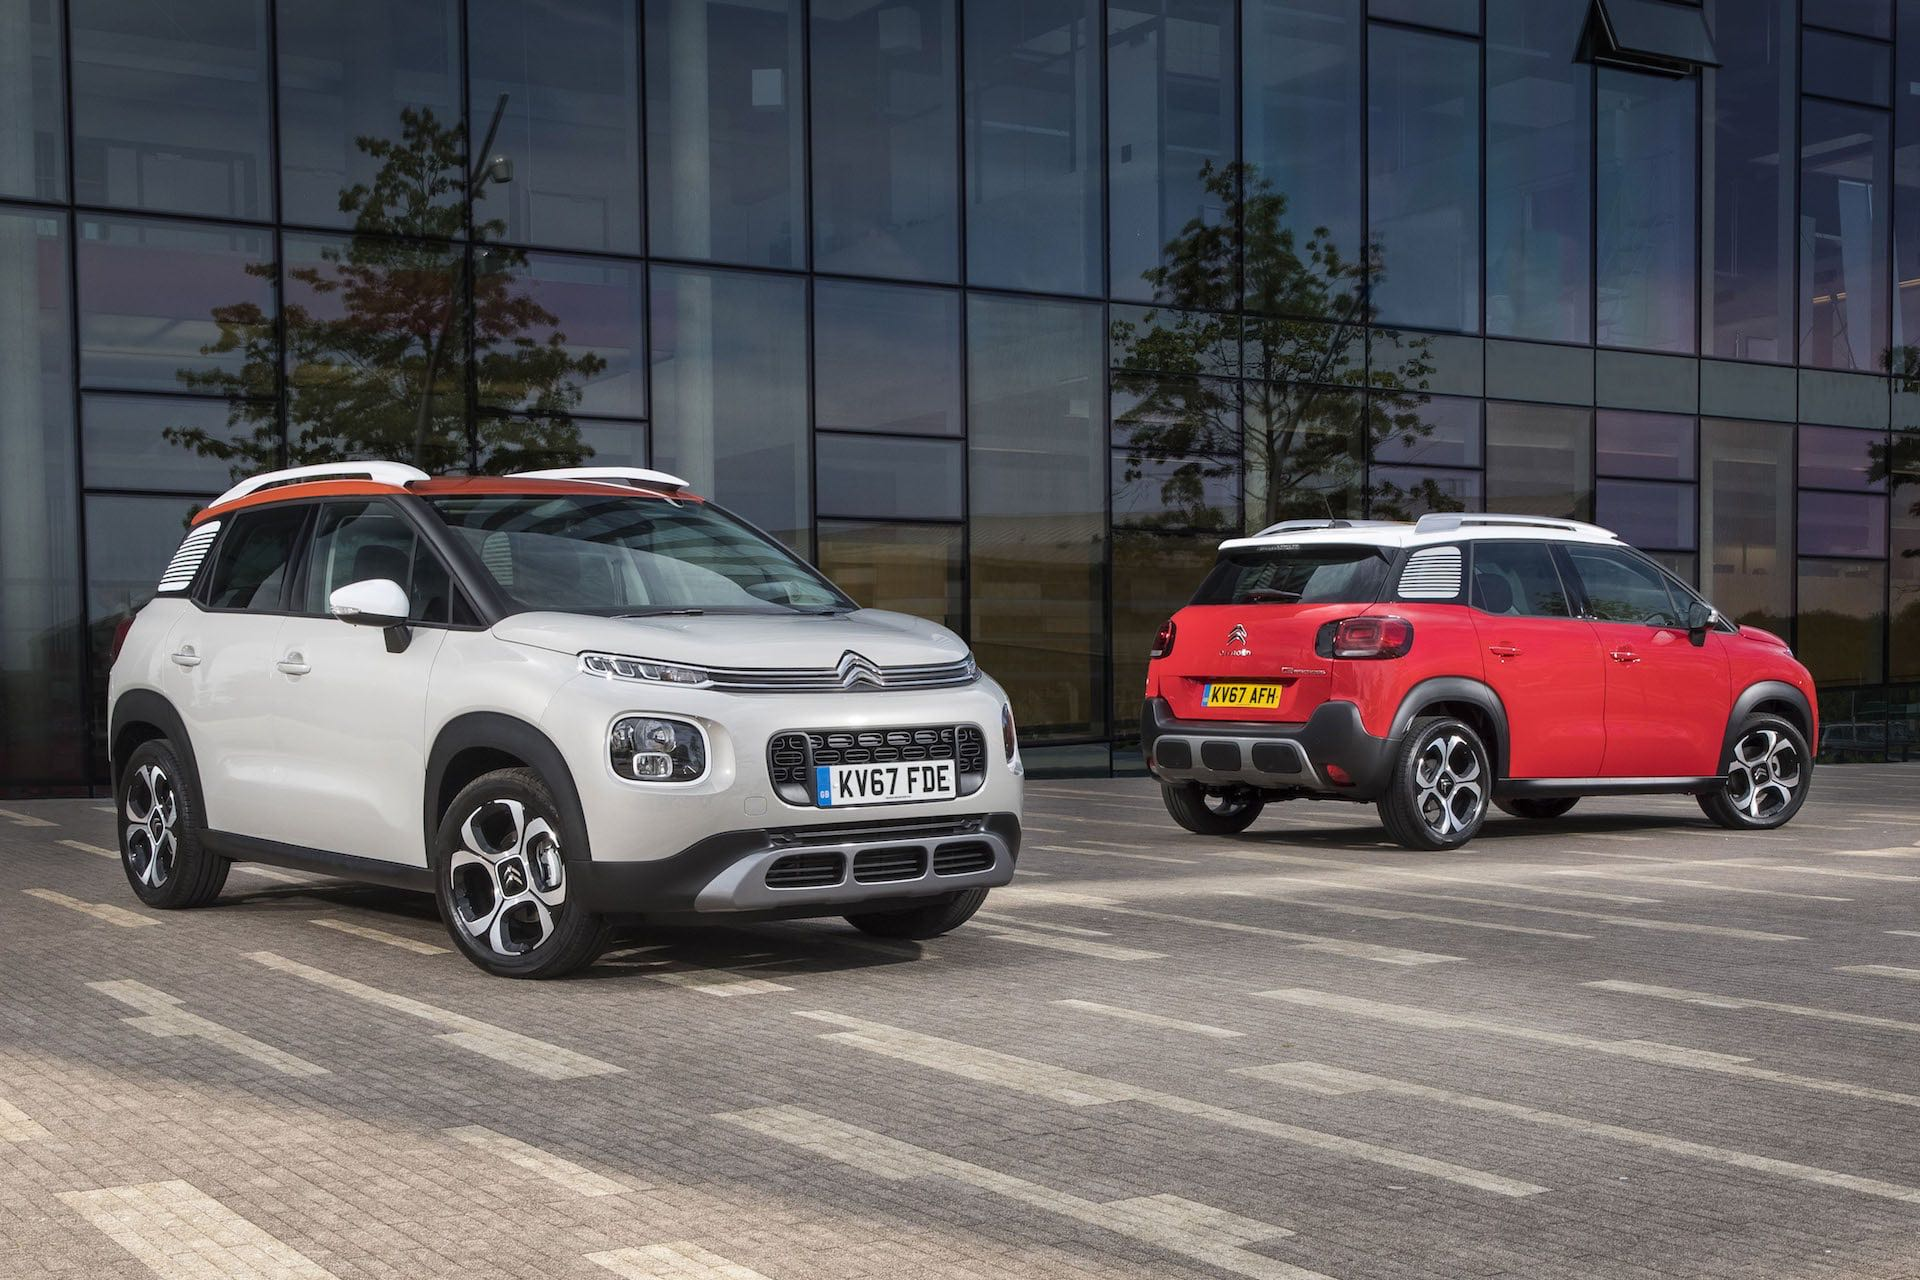 Citroen C3 Aircross - front and rear